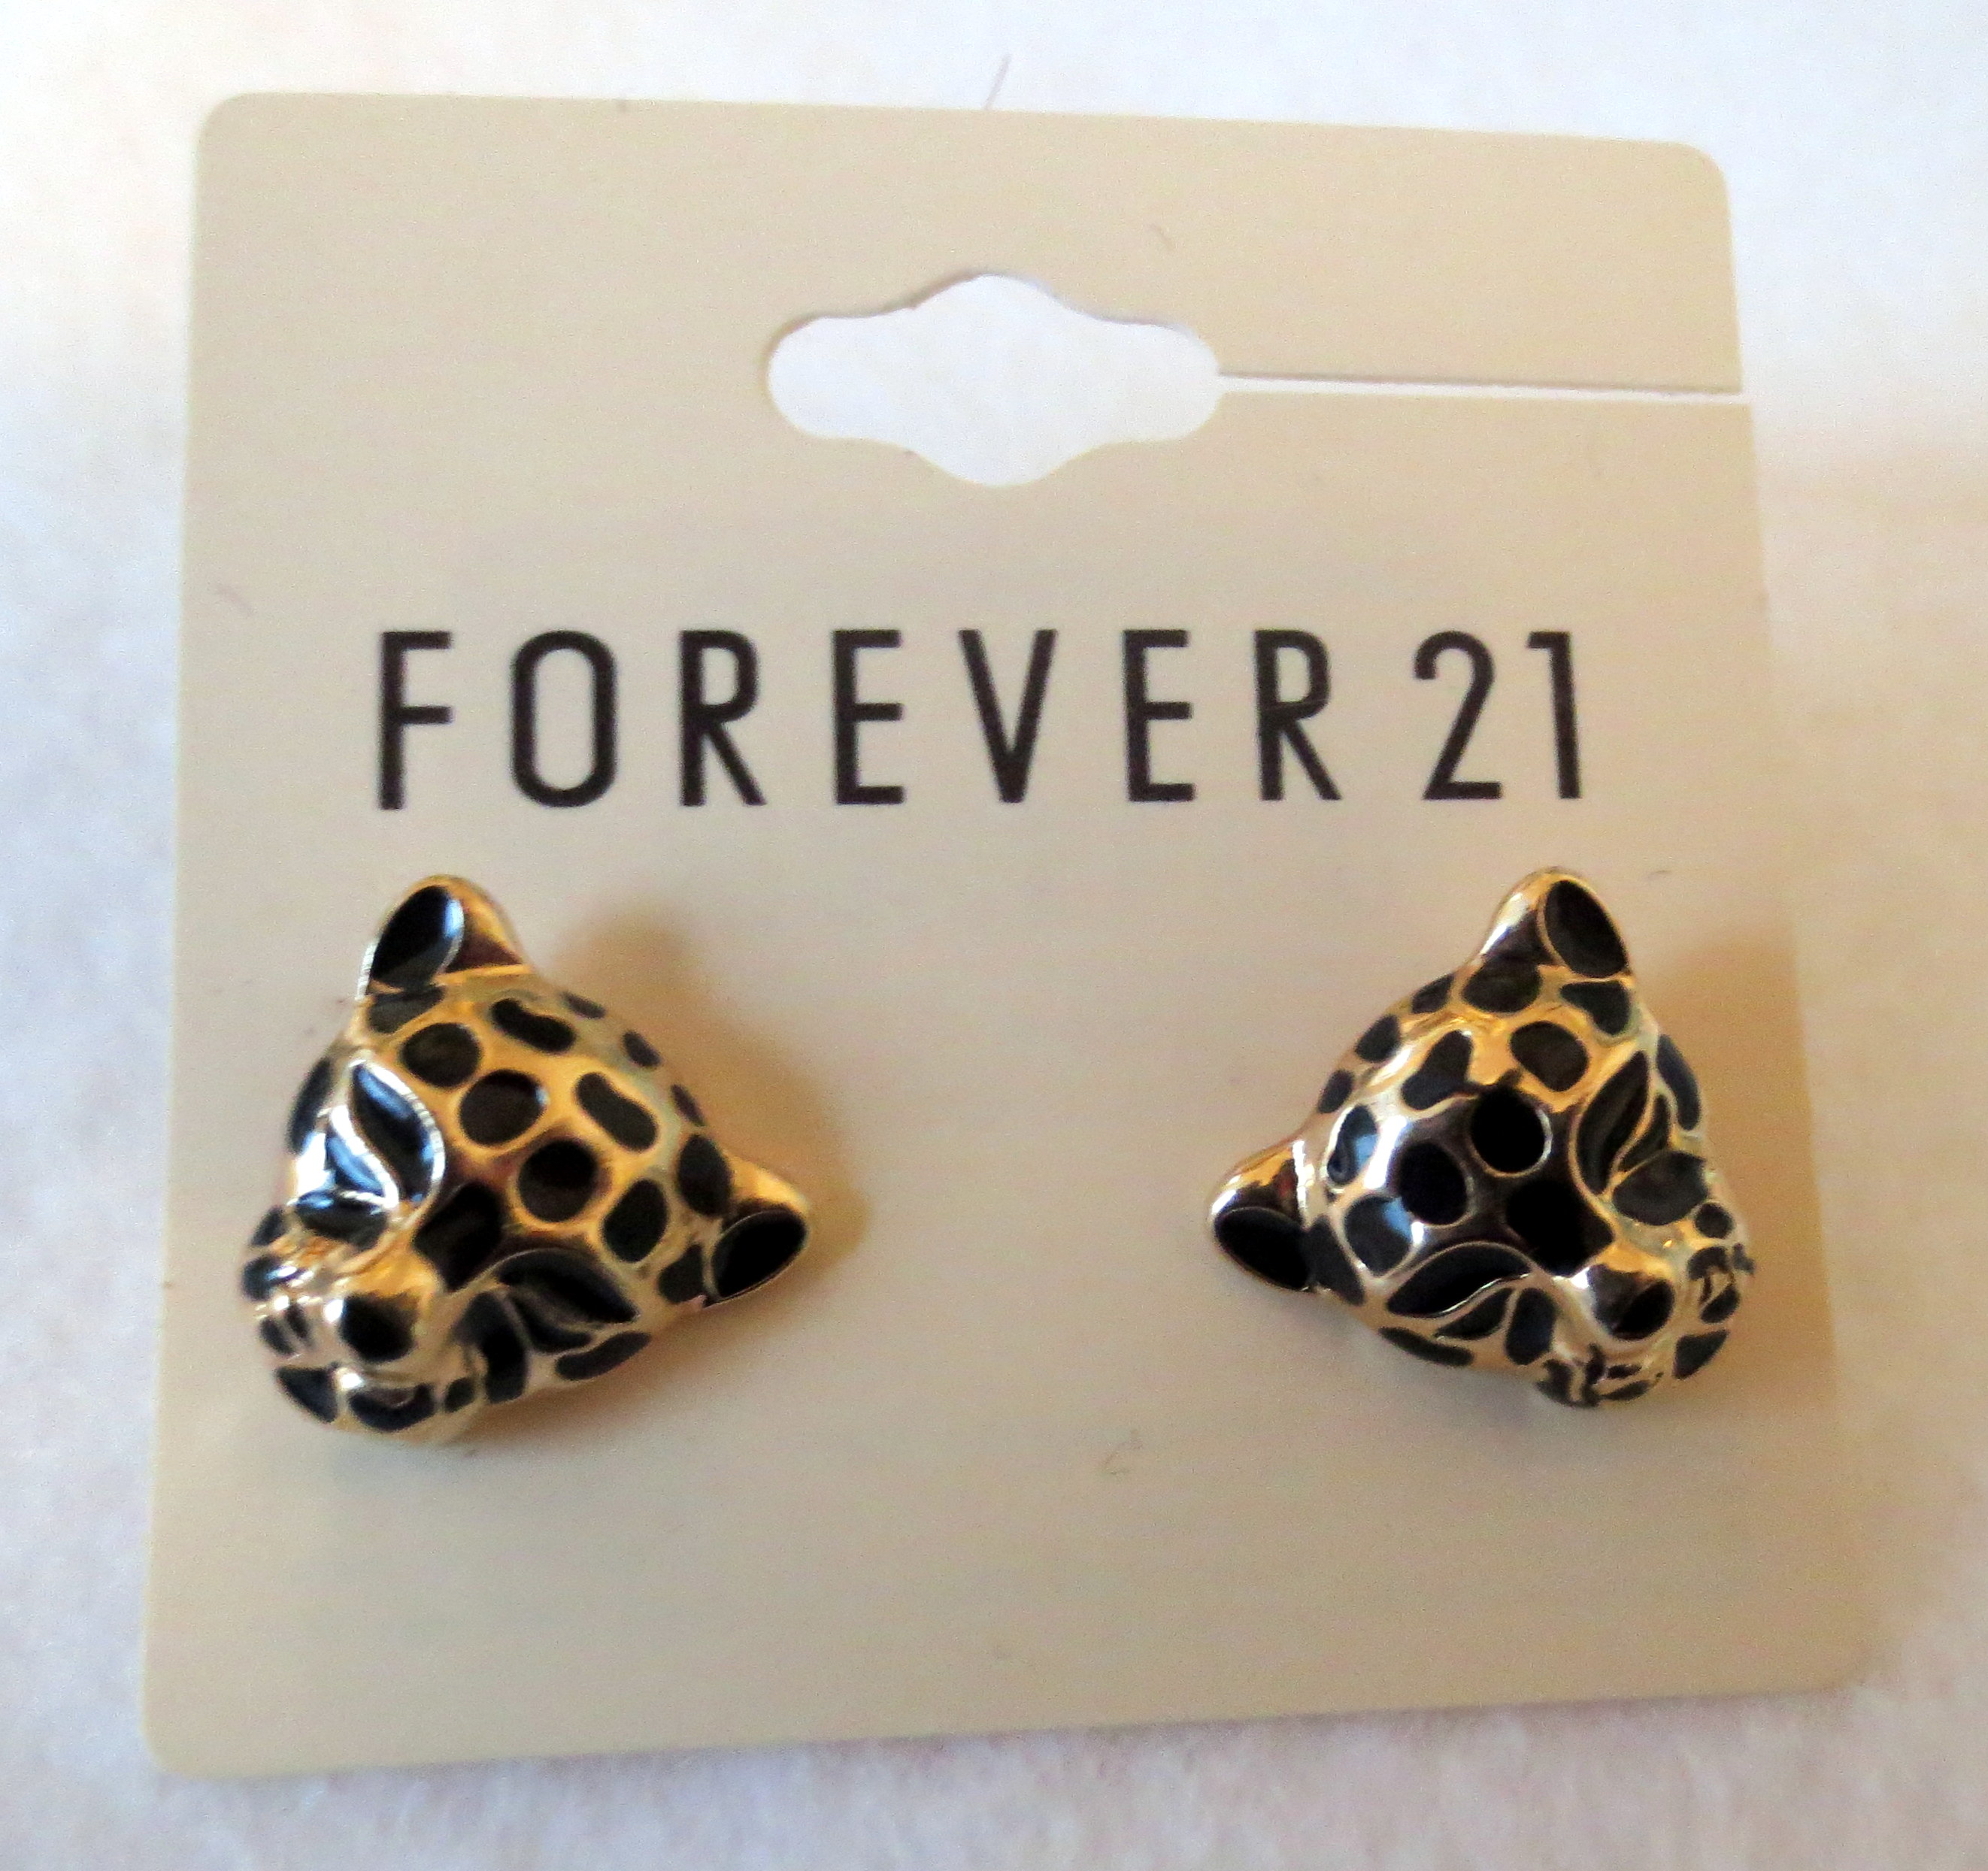 Forever 21 leopard earrings for Forever 21 jewelry earrings